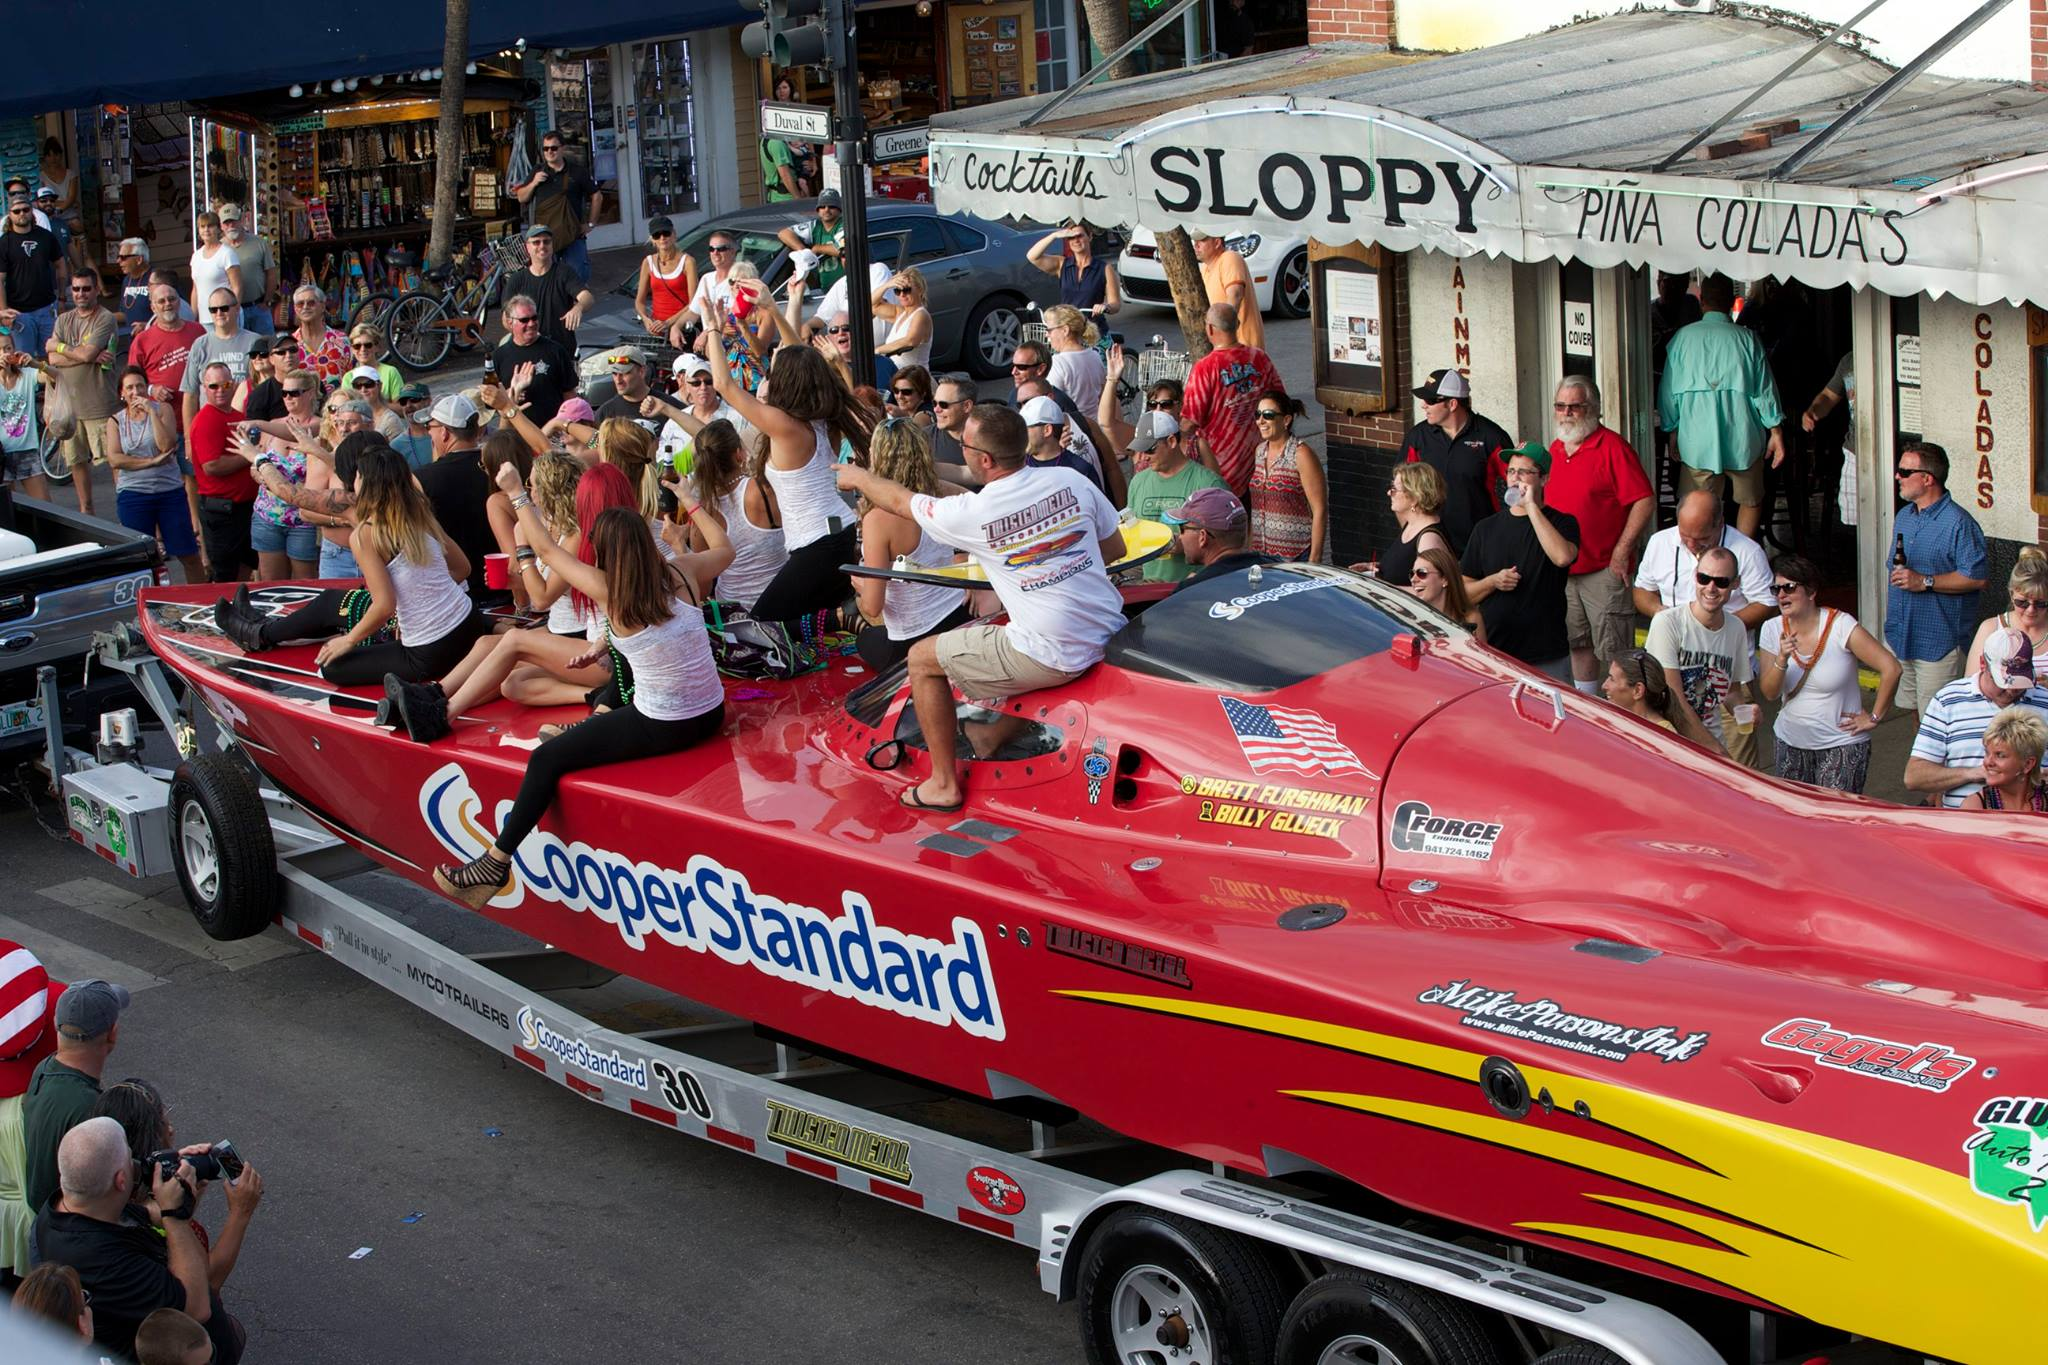 Twisted Metal/Cooper Standard is out to keep its new sponsor and bring home a Superboat Extreme-class world title.